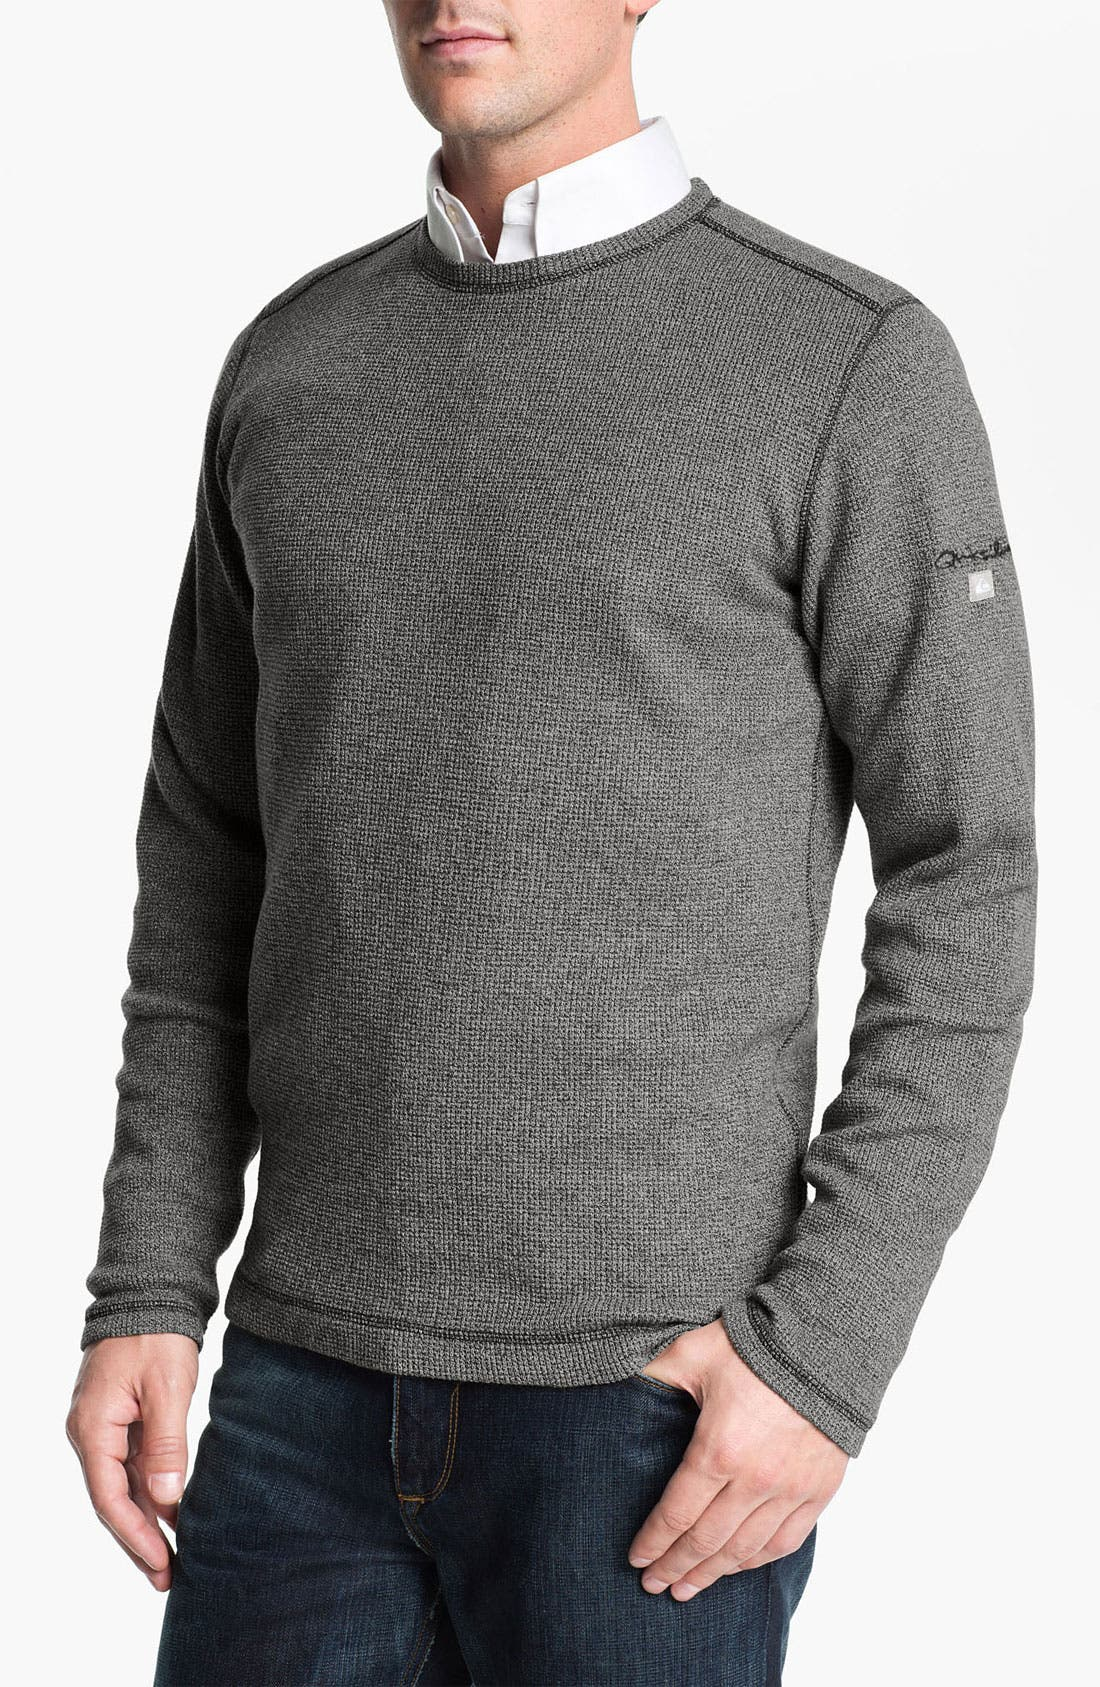 Alternate Image 1 Selected - Quiksilver Waterman Collection Cotton Crewneck Sweater